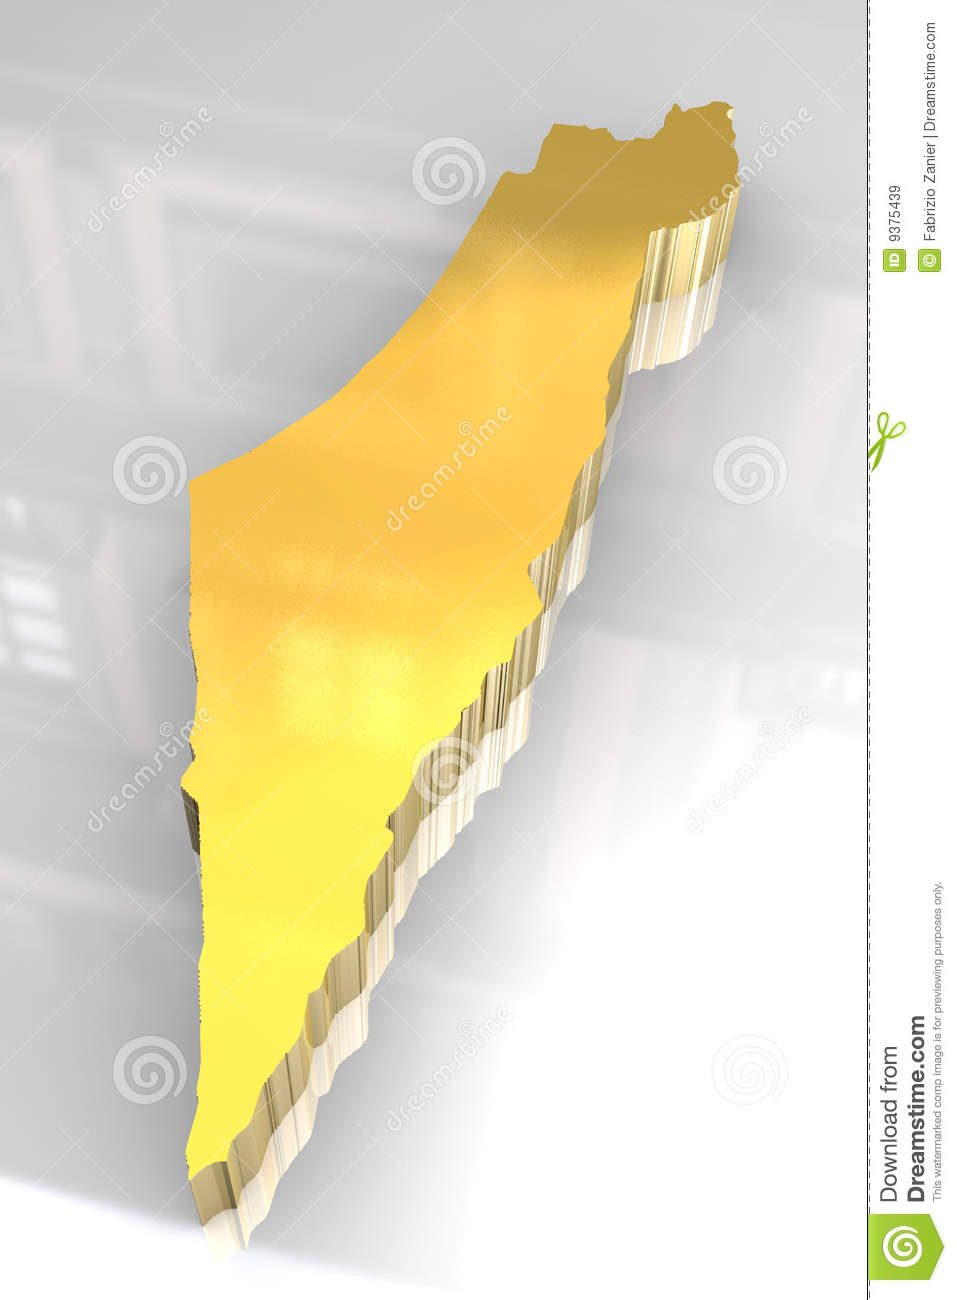 3d Golden Map Of Israel Royalty Free Stock Images Image